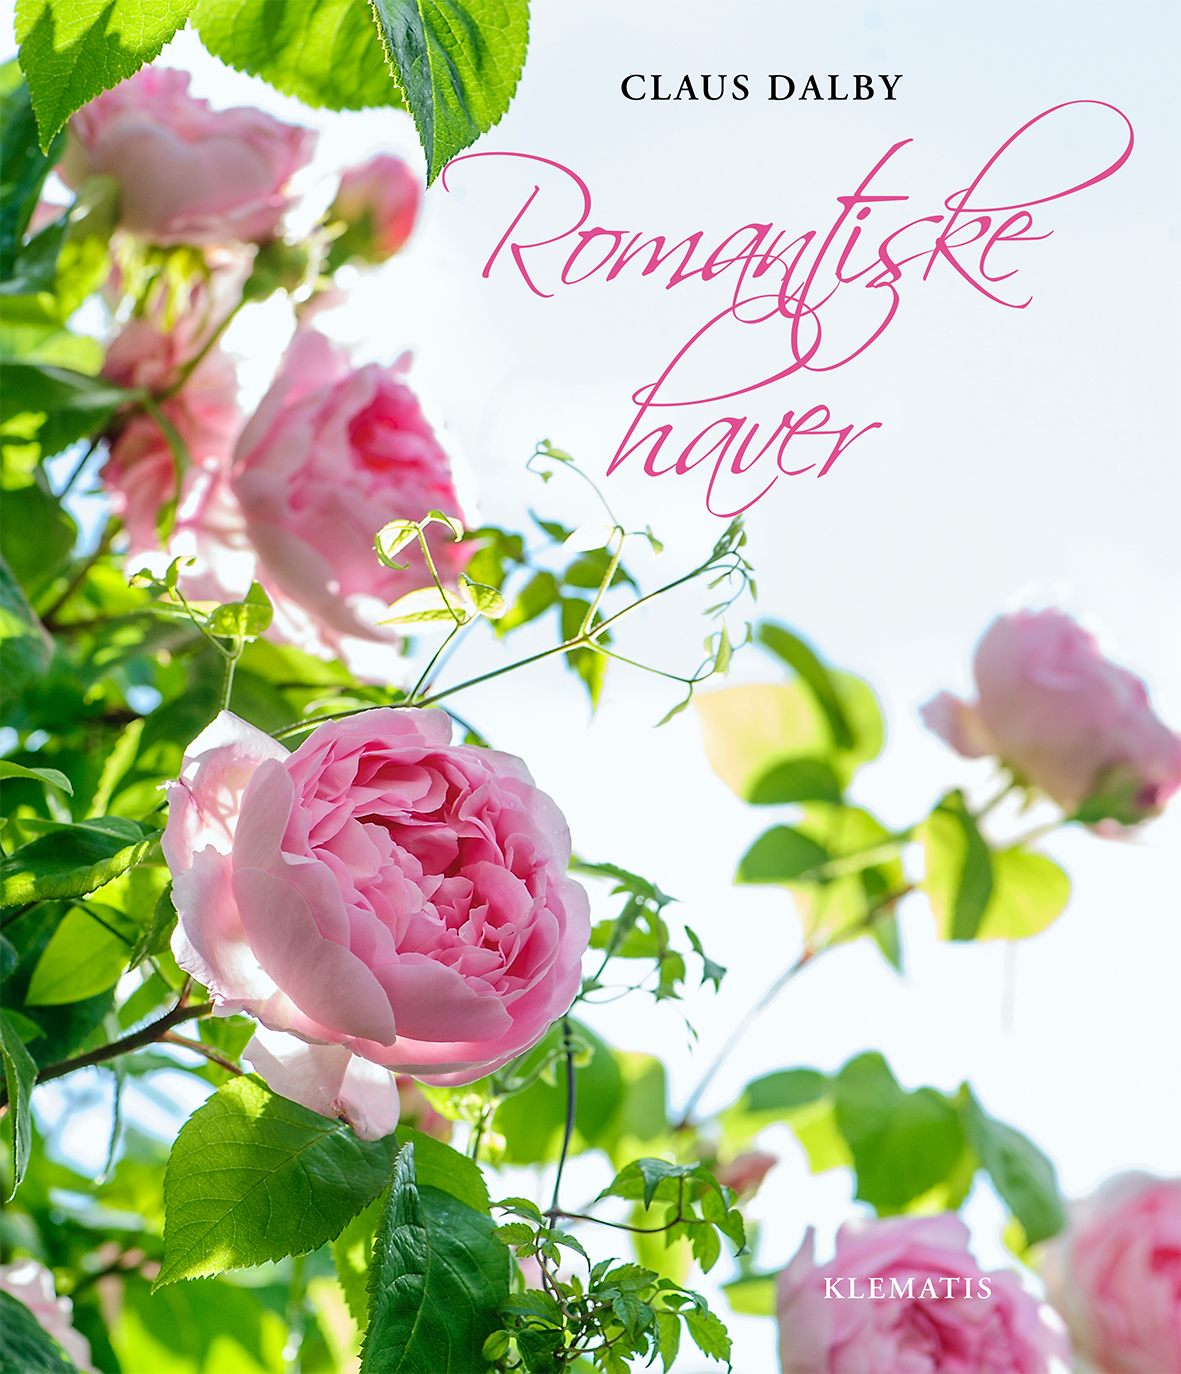 Romantiske haver